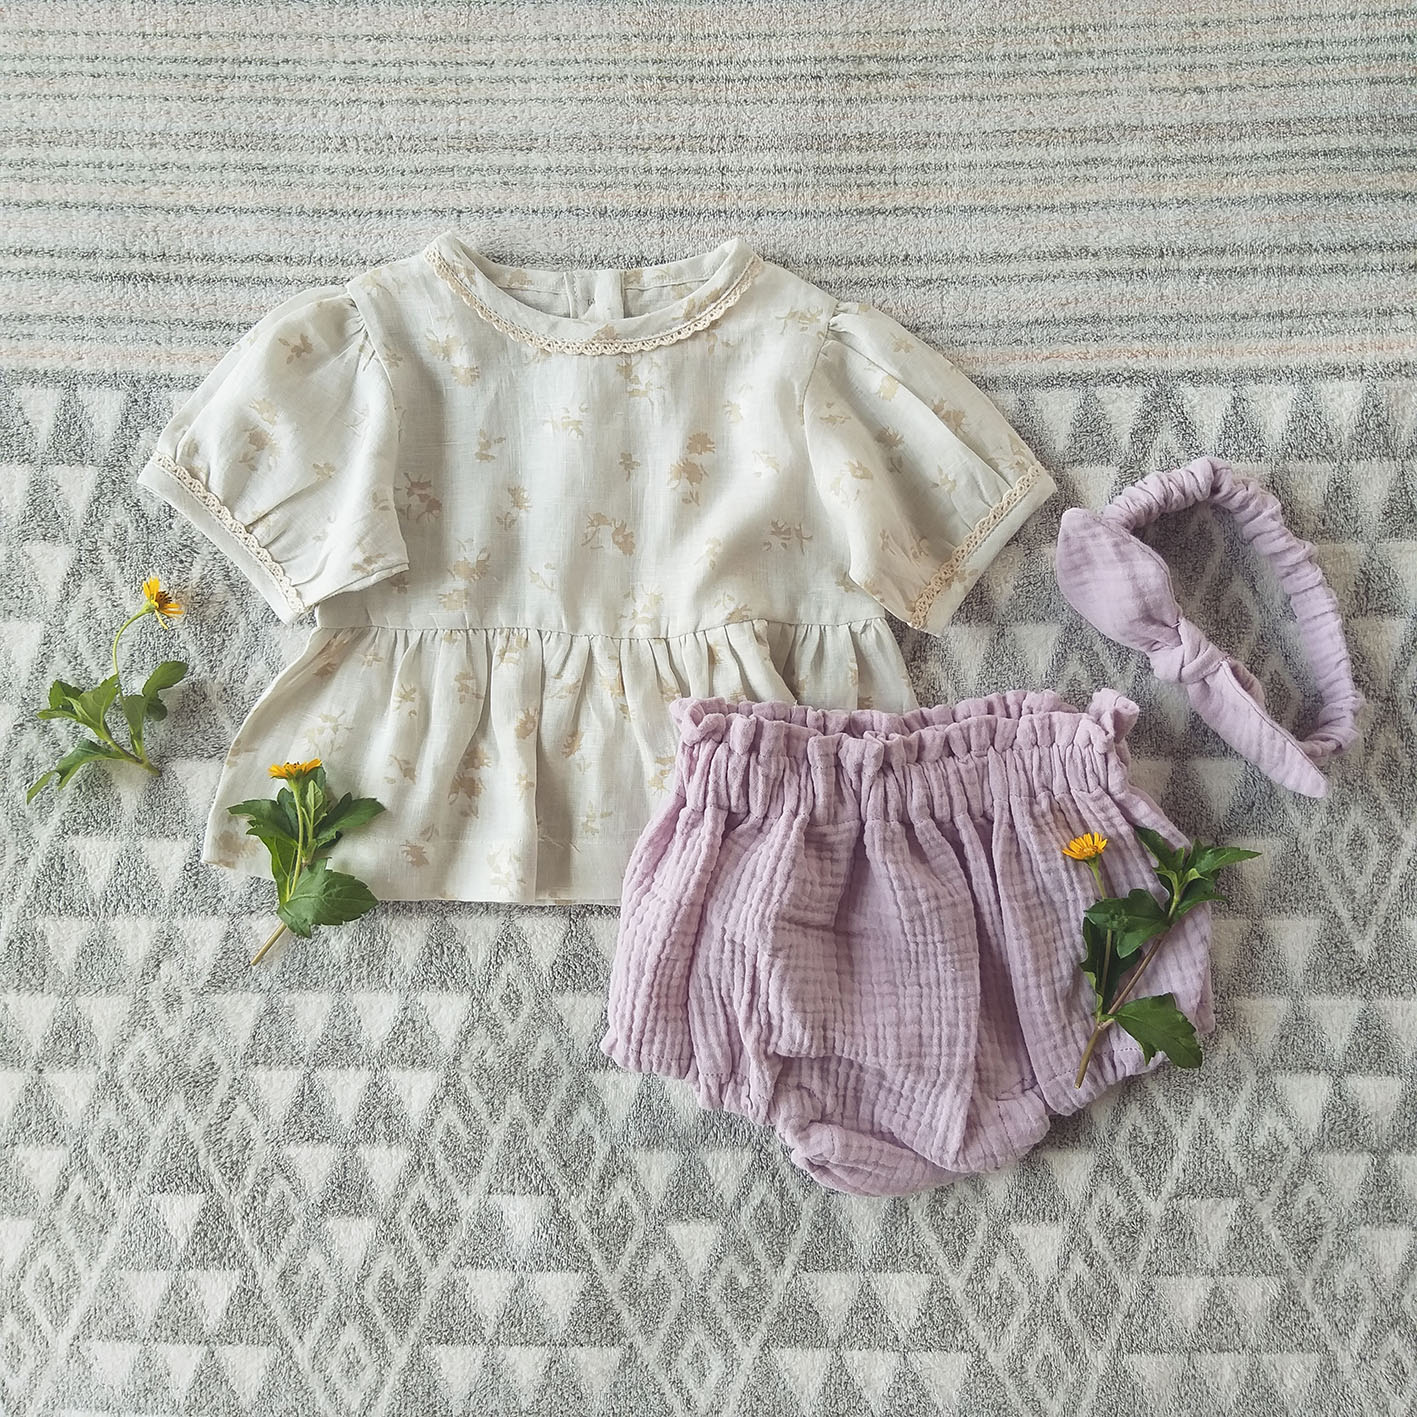 SET PUFF SLEEVES BLOUSE WITH LACE TRIM+ DUSTY PINK COTTON BLOOMER 100% LINEN CREAM FLORA